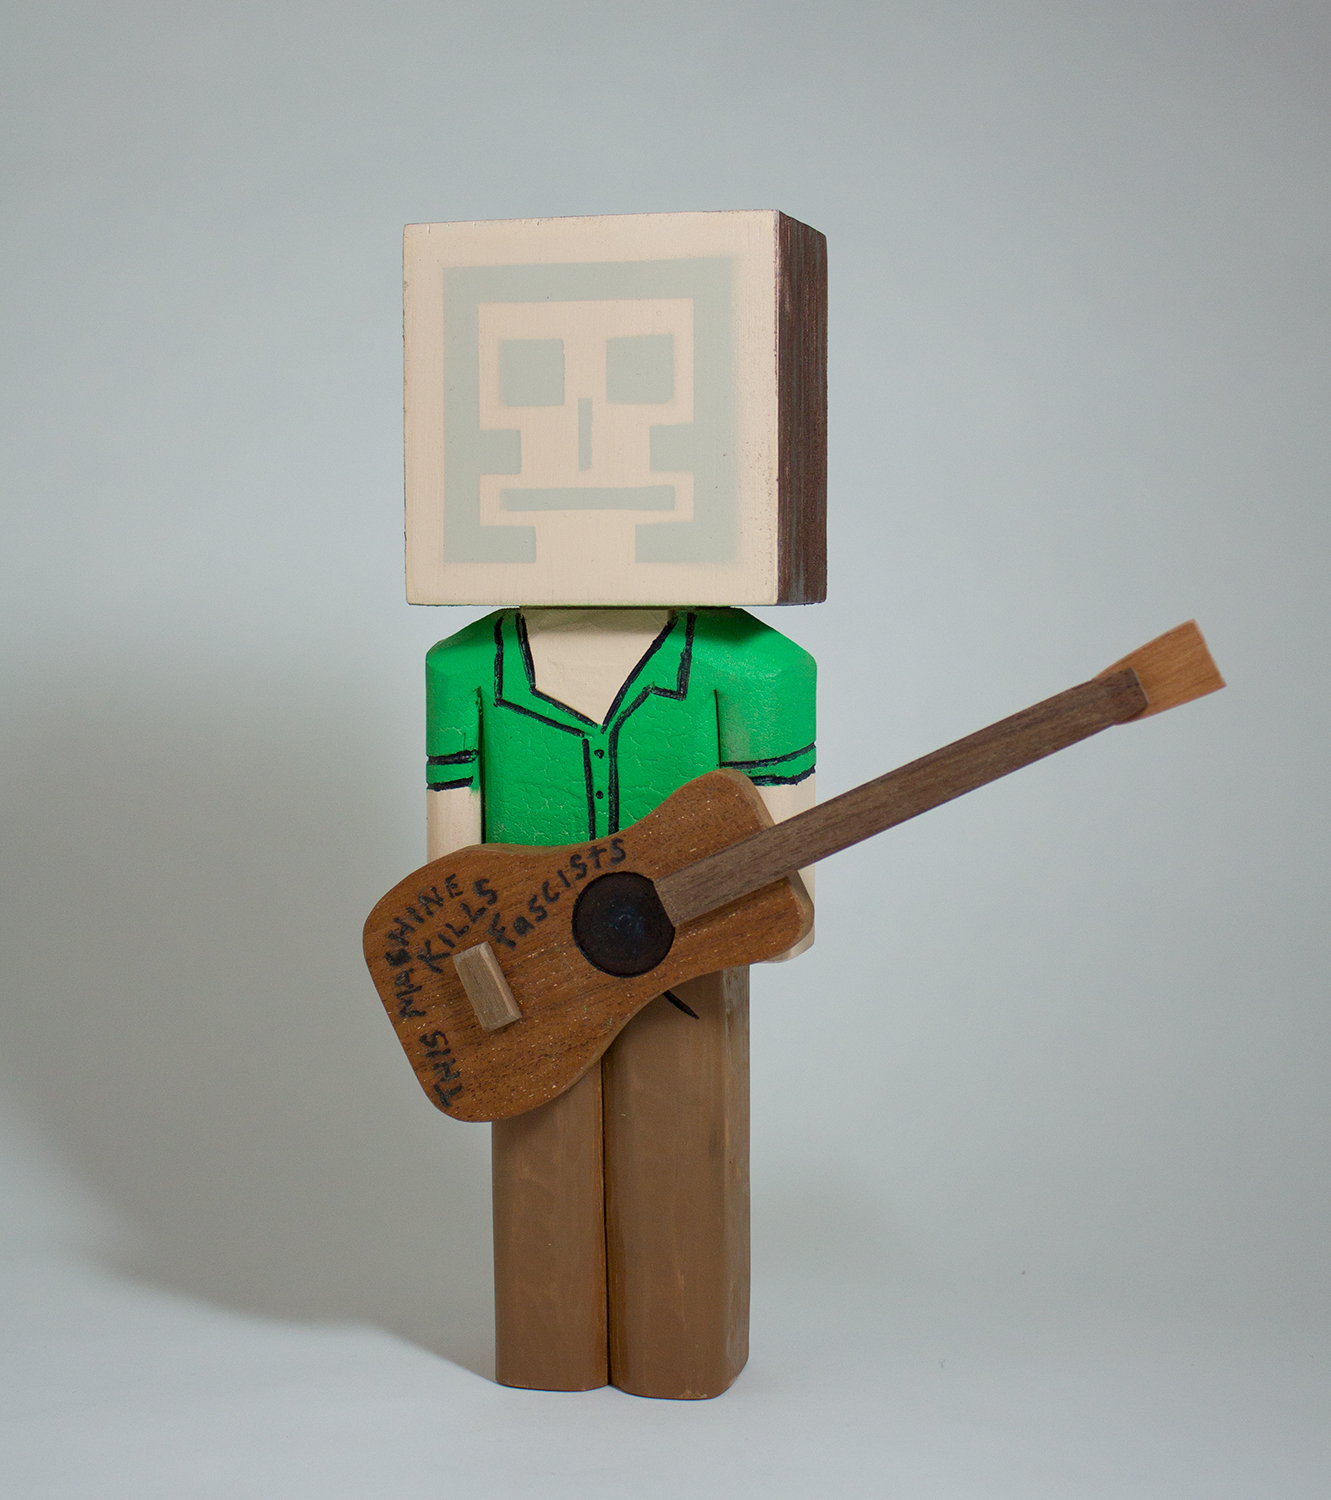 Woodie Guthrie in collaboration with Evereman wood and acrylic 10 x 3.25 x 2 inches CSK 027G